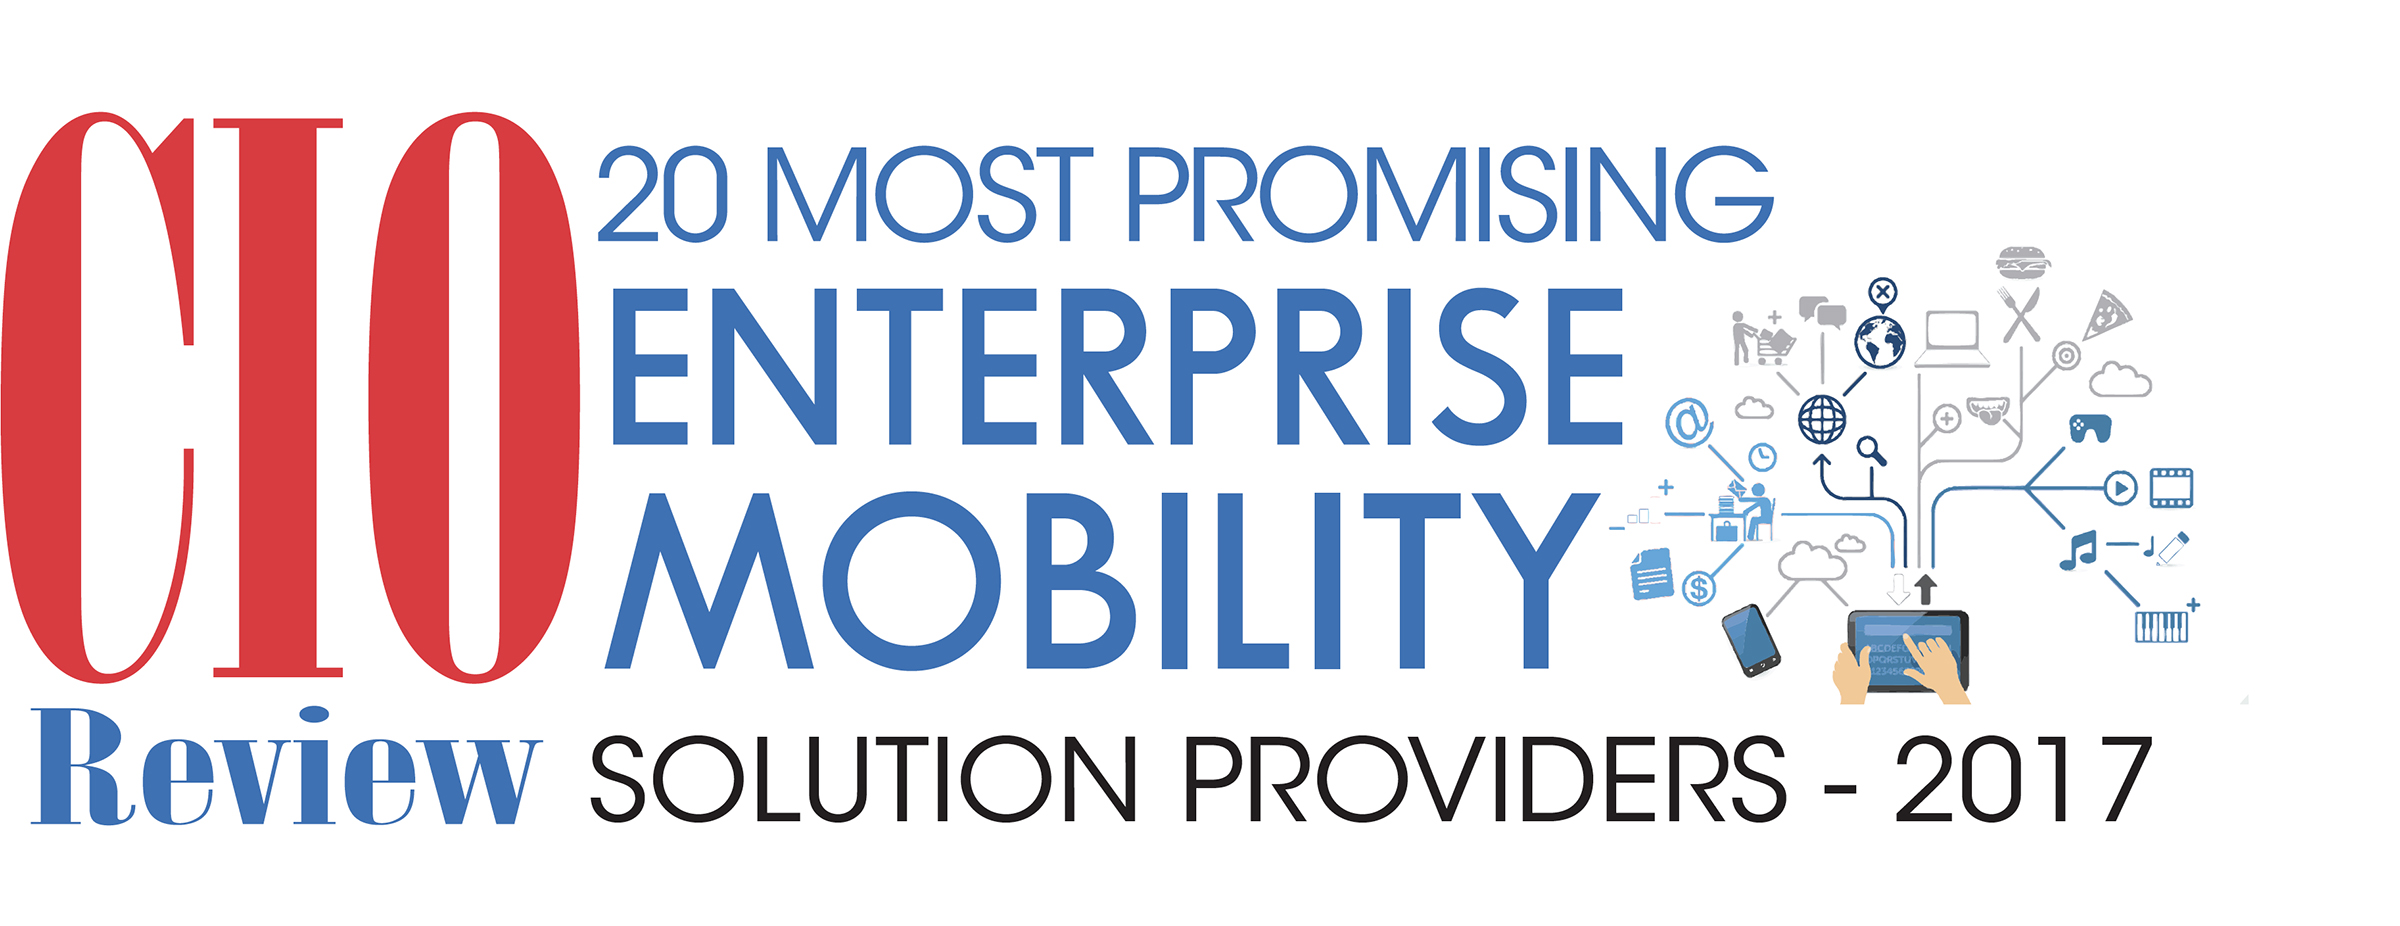 Enterprise Mobility Recognition